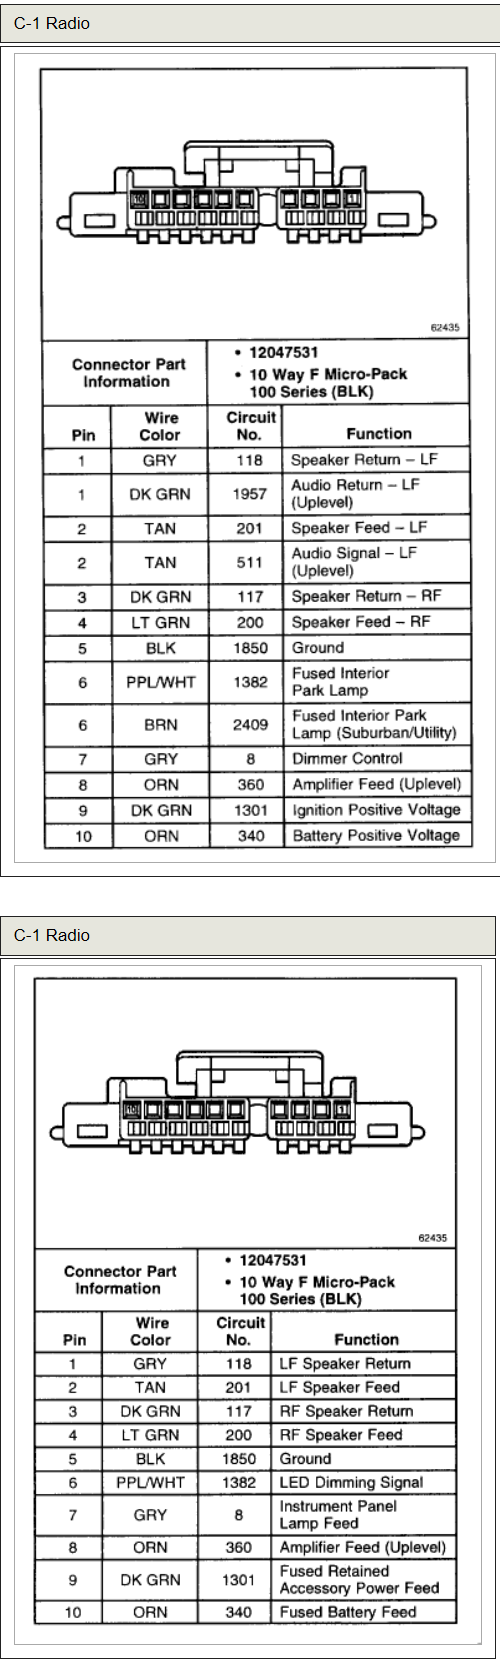 CHEVROLET Car Radio Stereo Audio Wiring Diagram Autoradio ... on vdo oil pressure sender wiring, vdo gauges diagram, vdo oil pressure gauge wiring, vdo tach installation, vdo tach wiring electric, vdo fuel pump, ford digital speedometer diagram, vdo tachometer wiring,